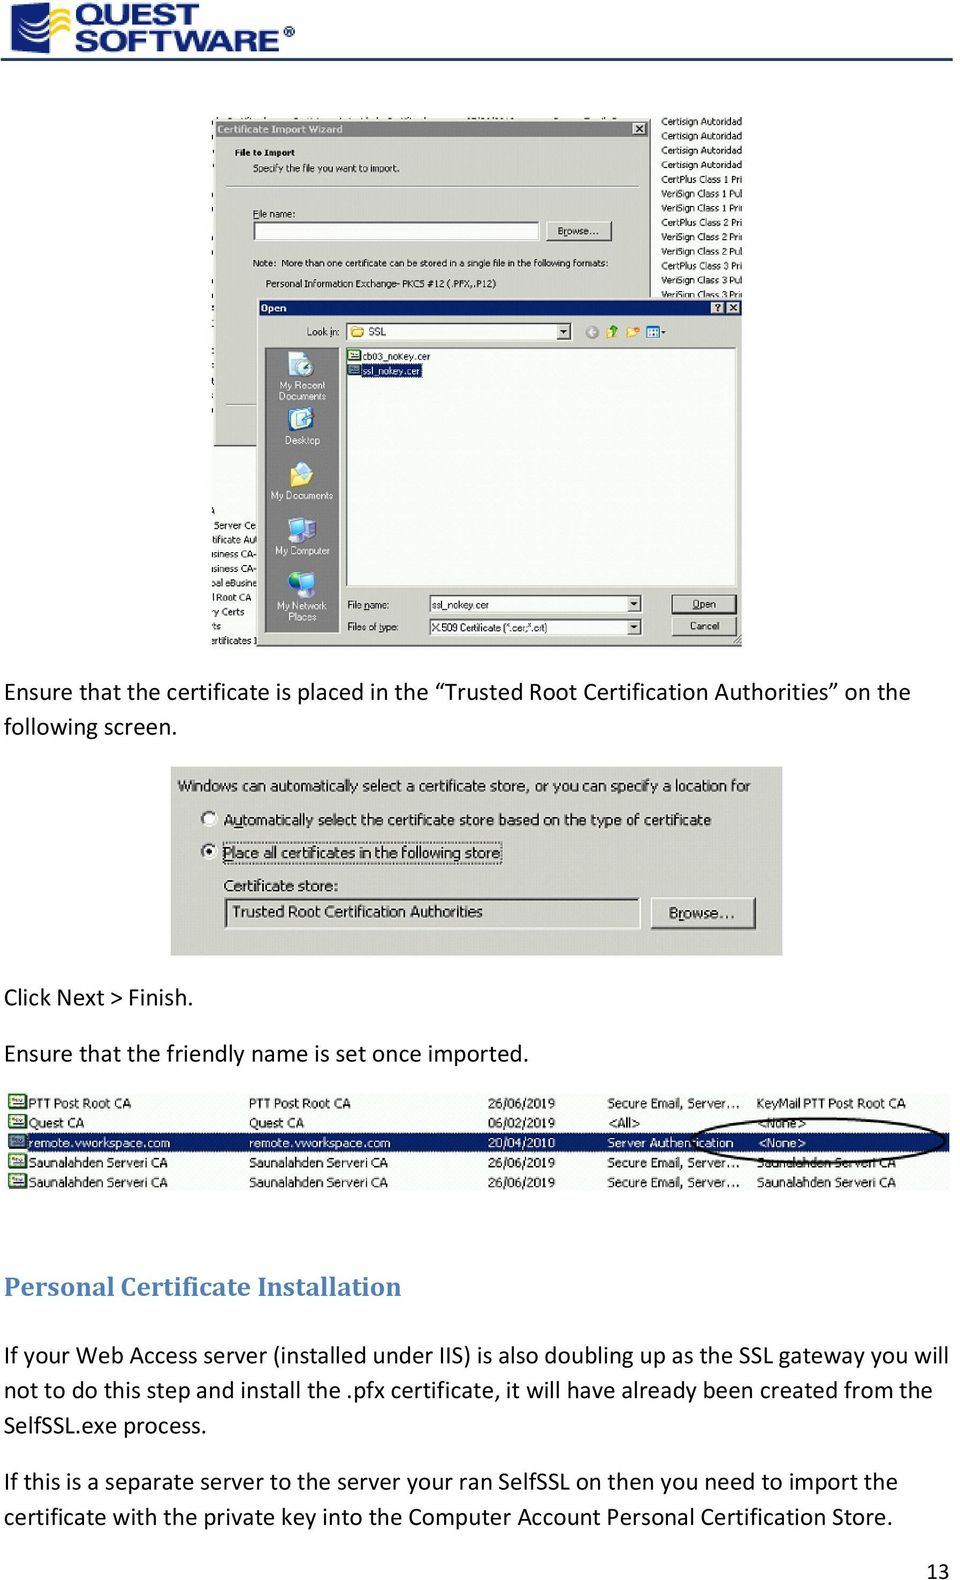 Personal Certificate Installation If your Web Access server (installed under IIS) is also doubling up as the SSL gateway you will not to do this step